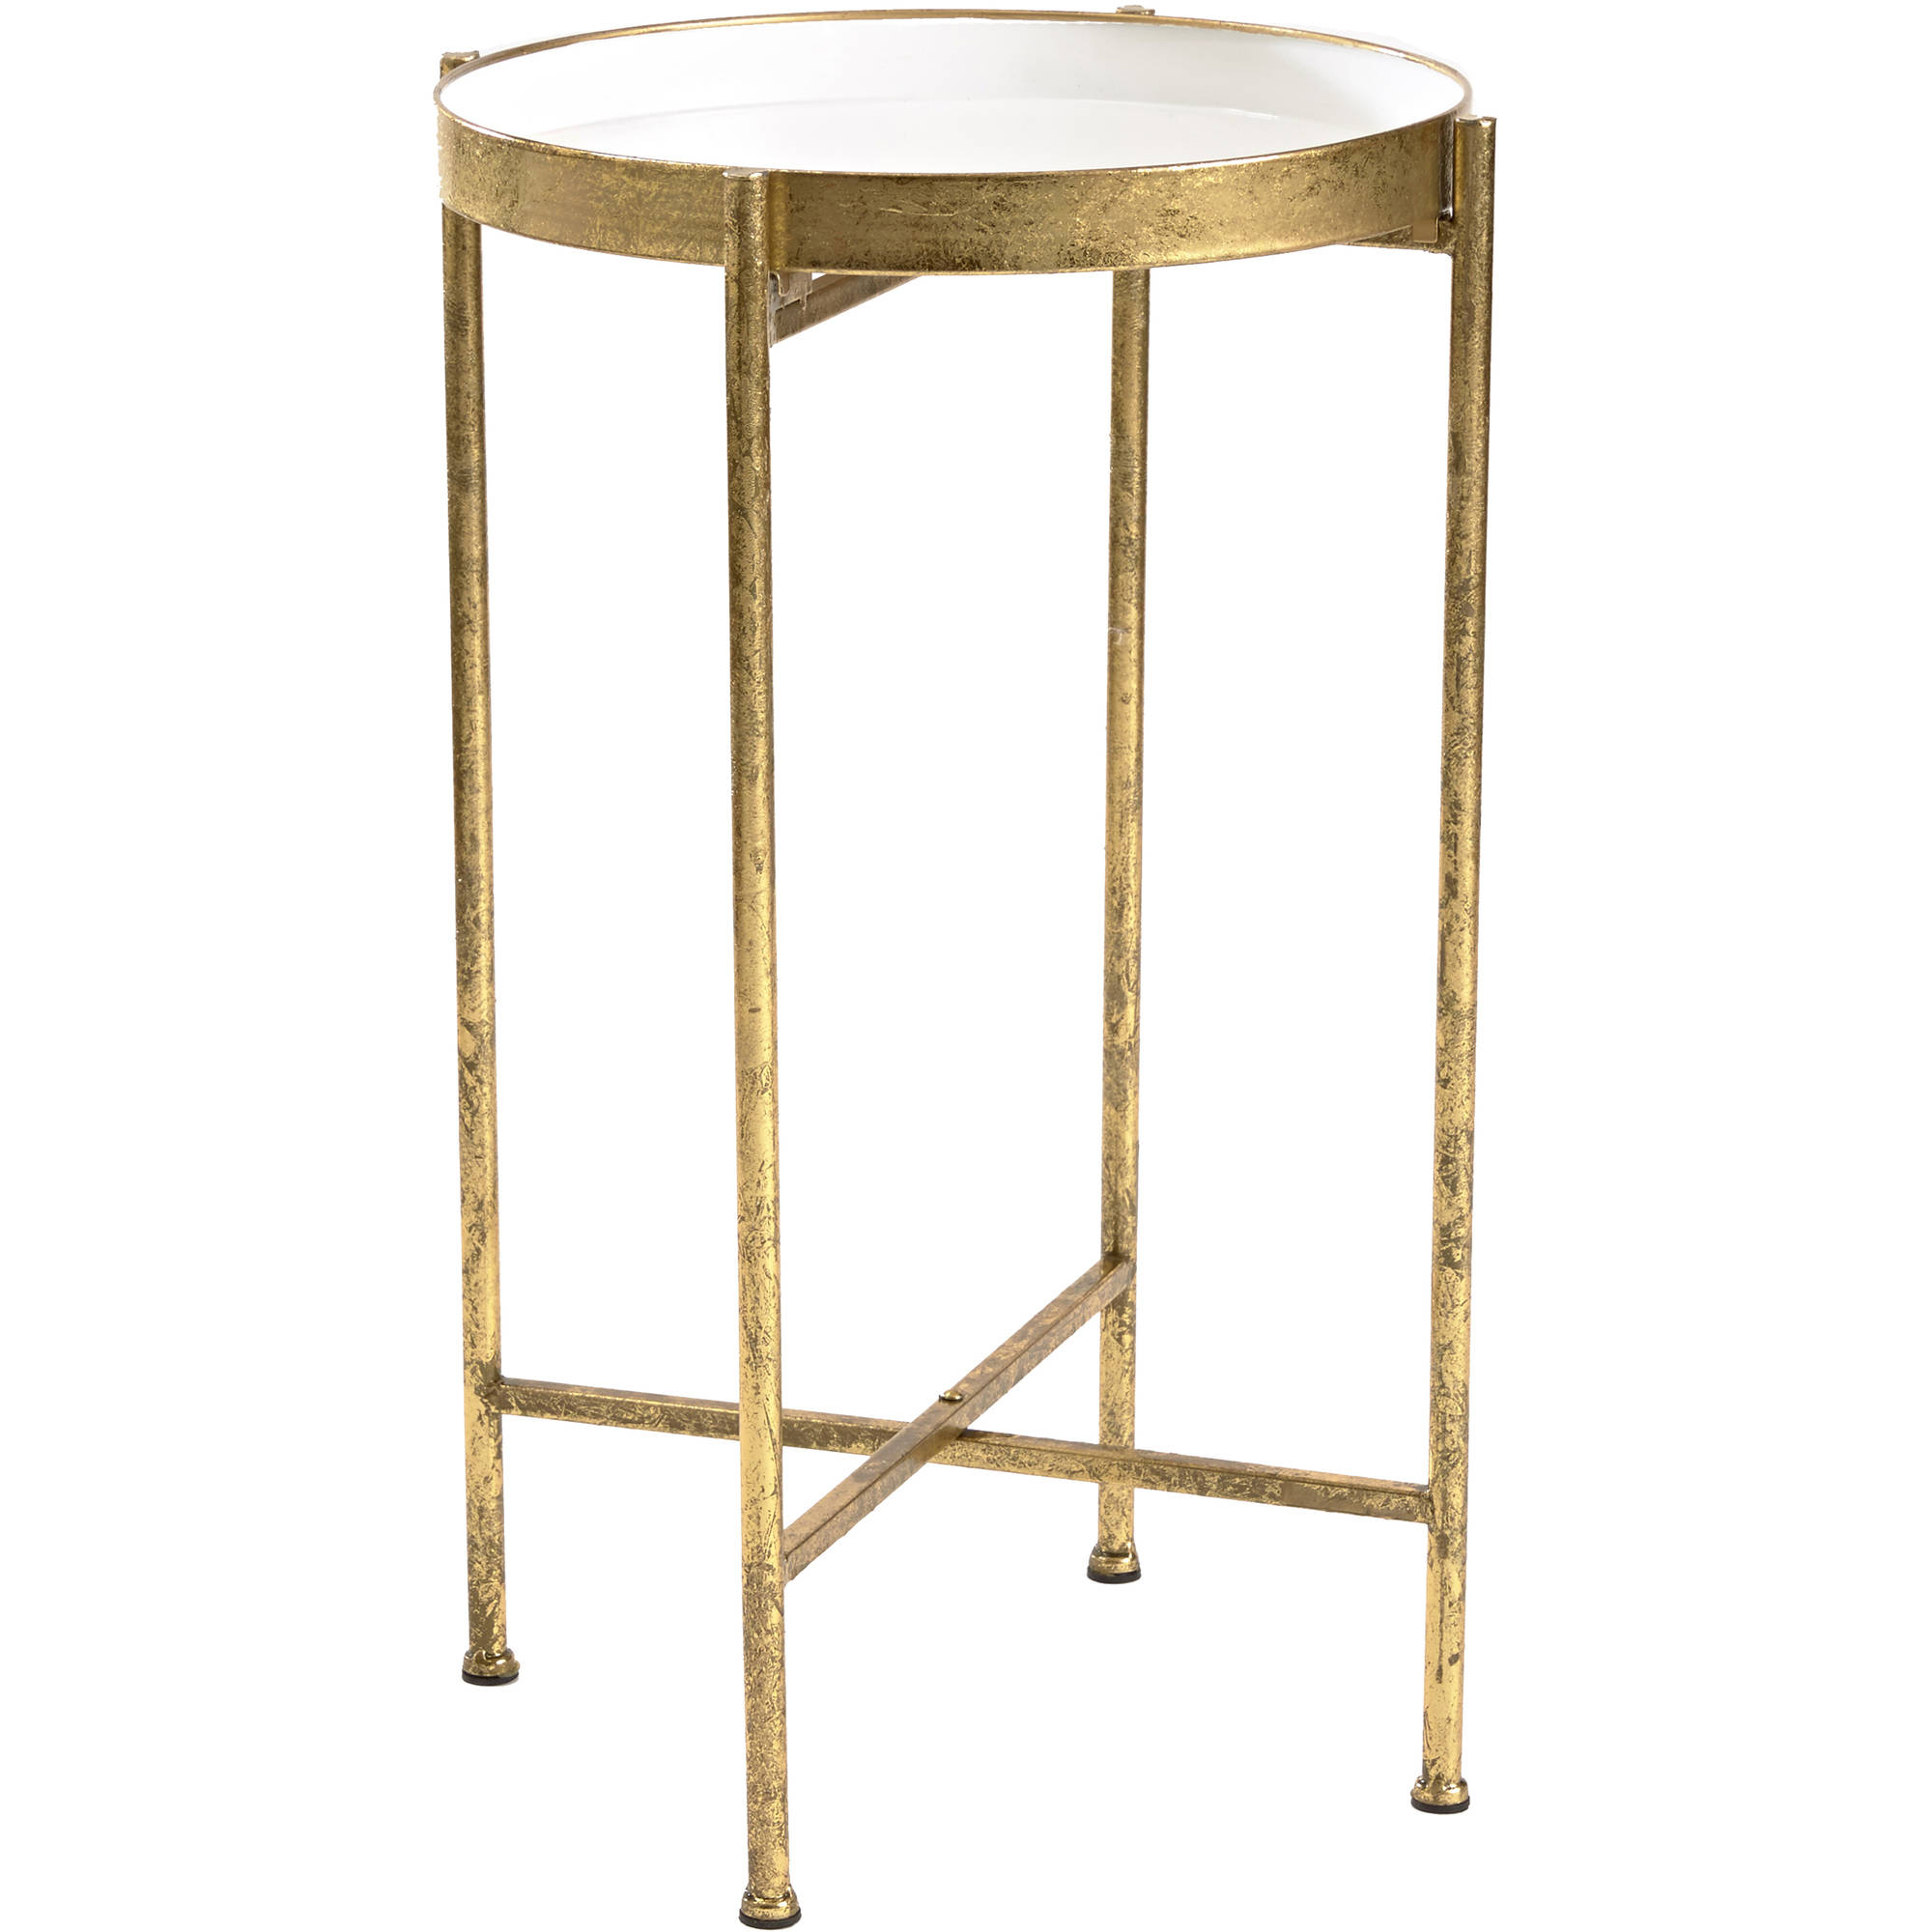 InnerSpace Small Gild Pop Up Tray Table by InnerSpace Luxury Products